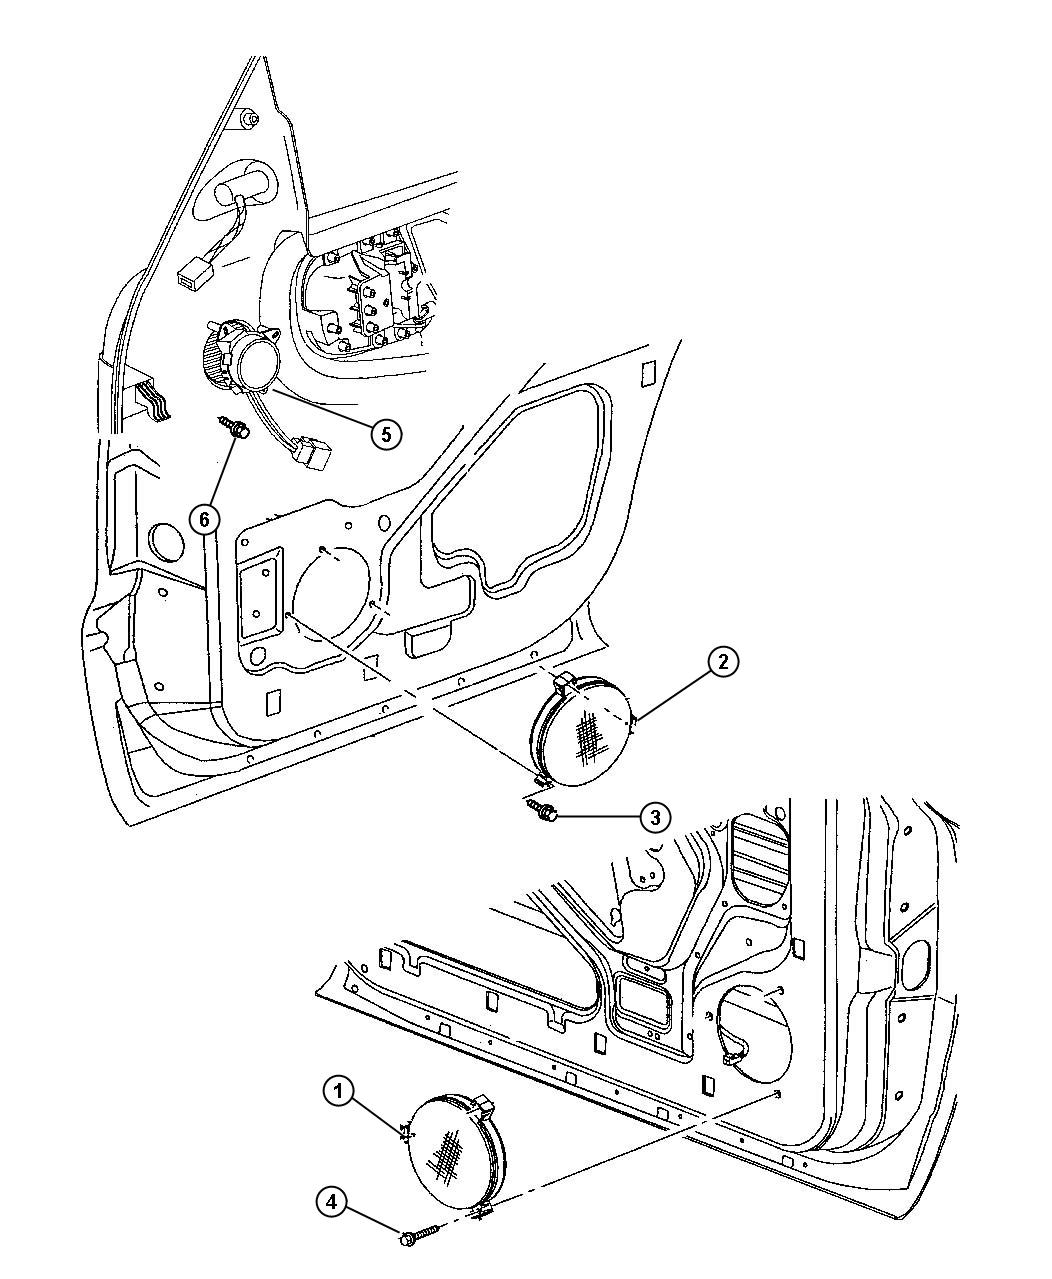 1999 dodge durango infinity stereo wiring diagram 2004 f250 fuse panel speaker 6 5 front door